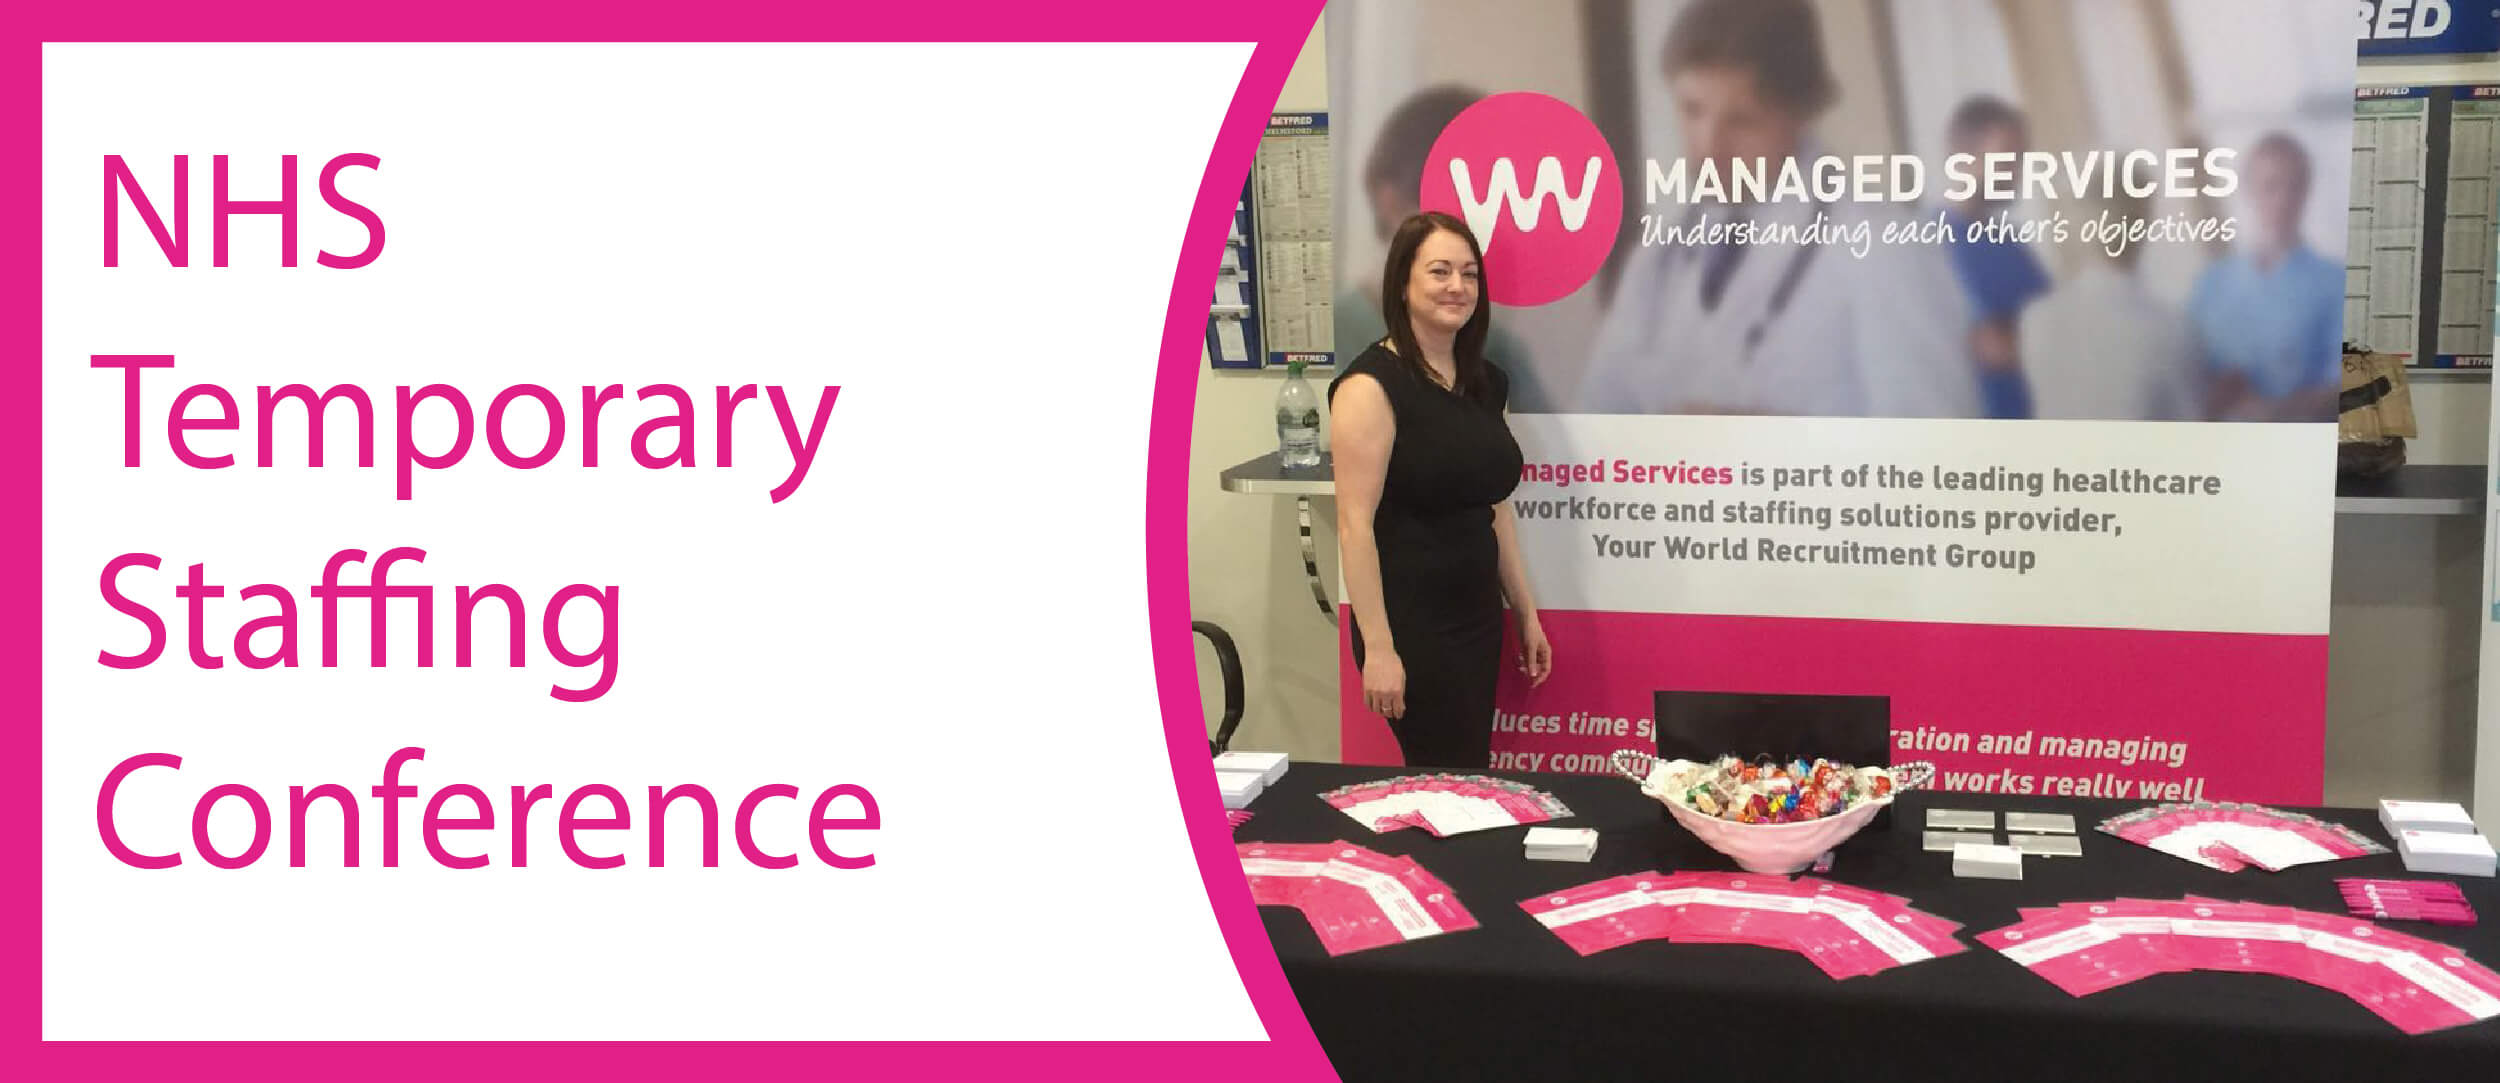 YW Managed Services at the NHS National Temporary Staffing Conference